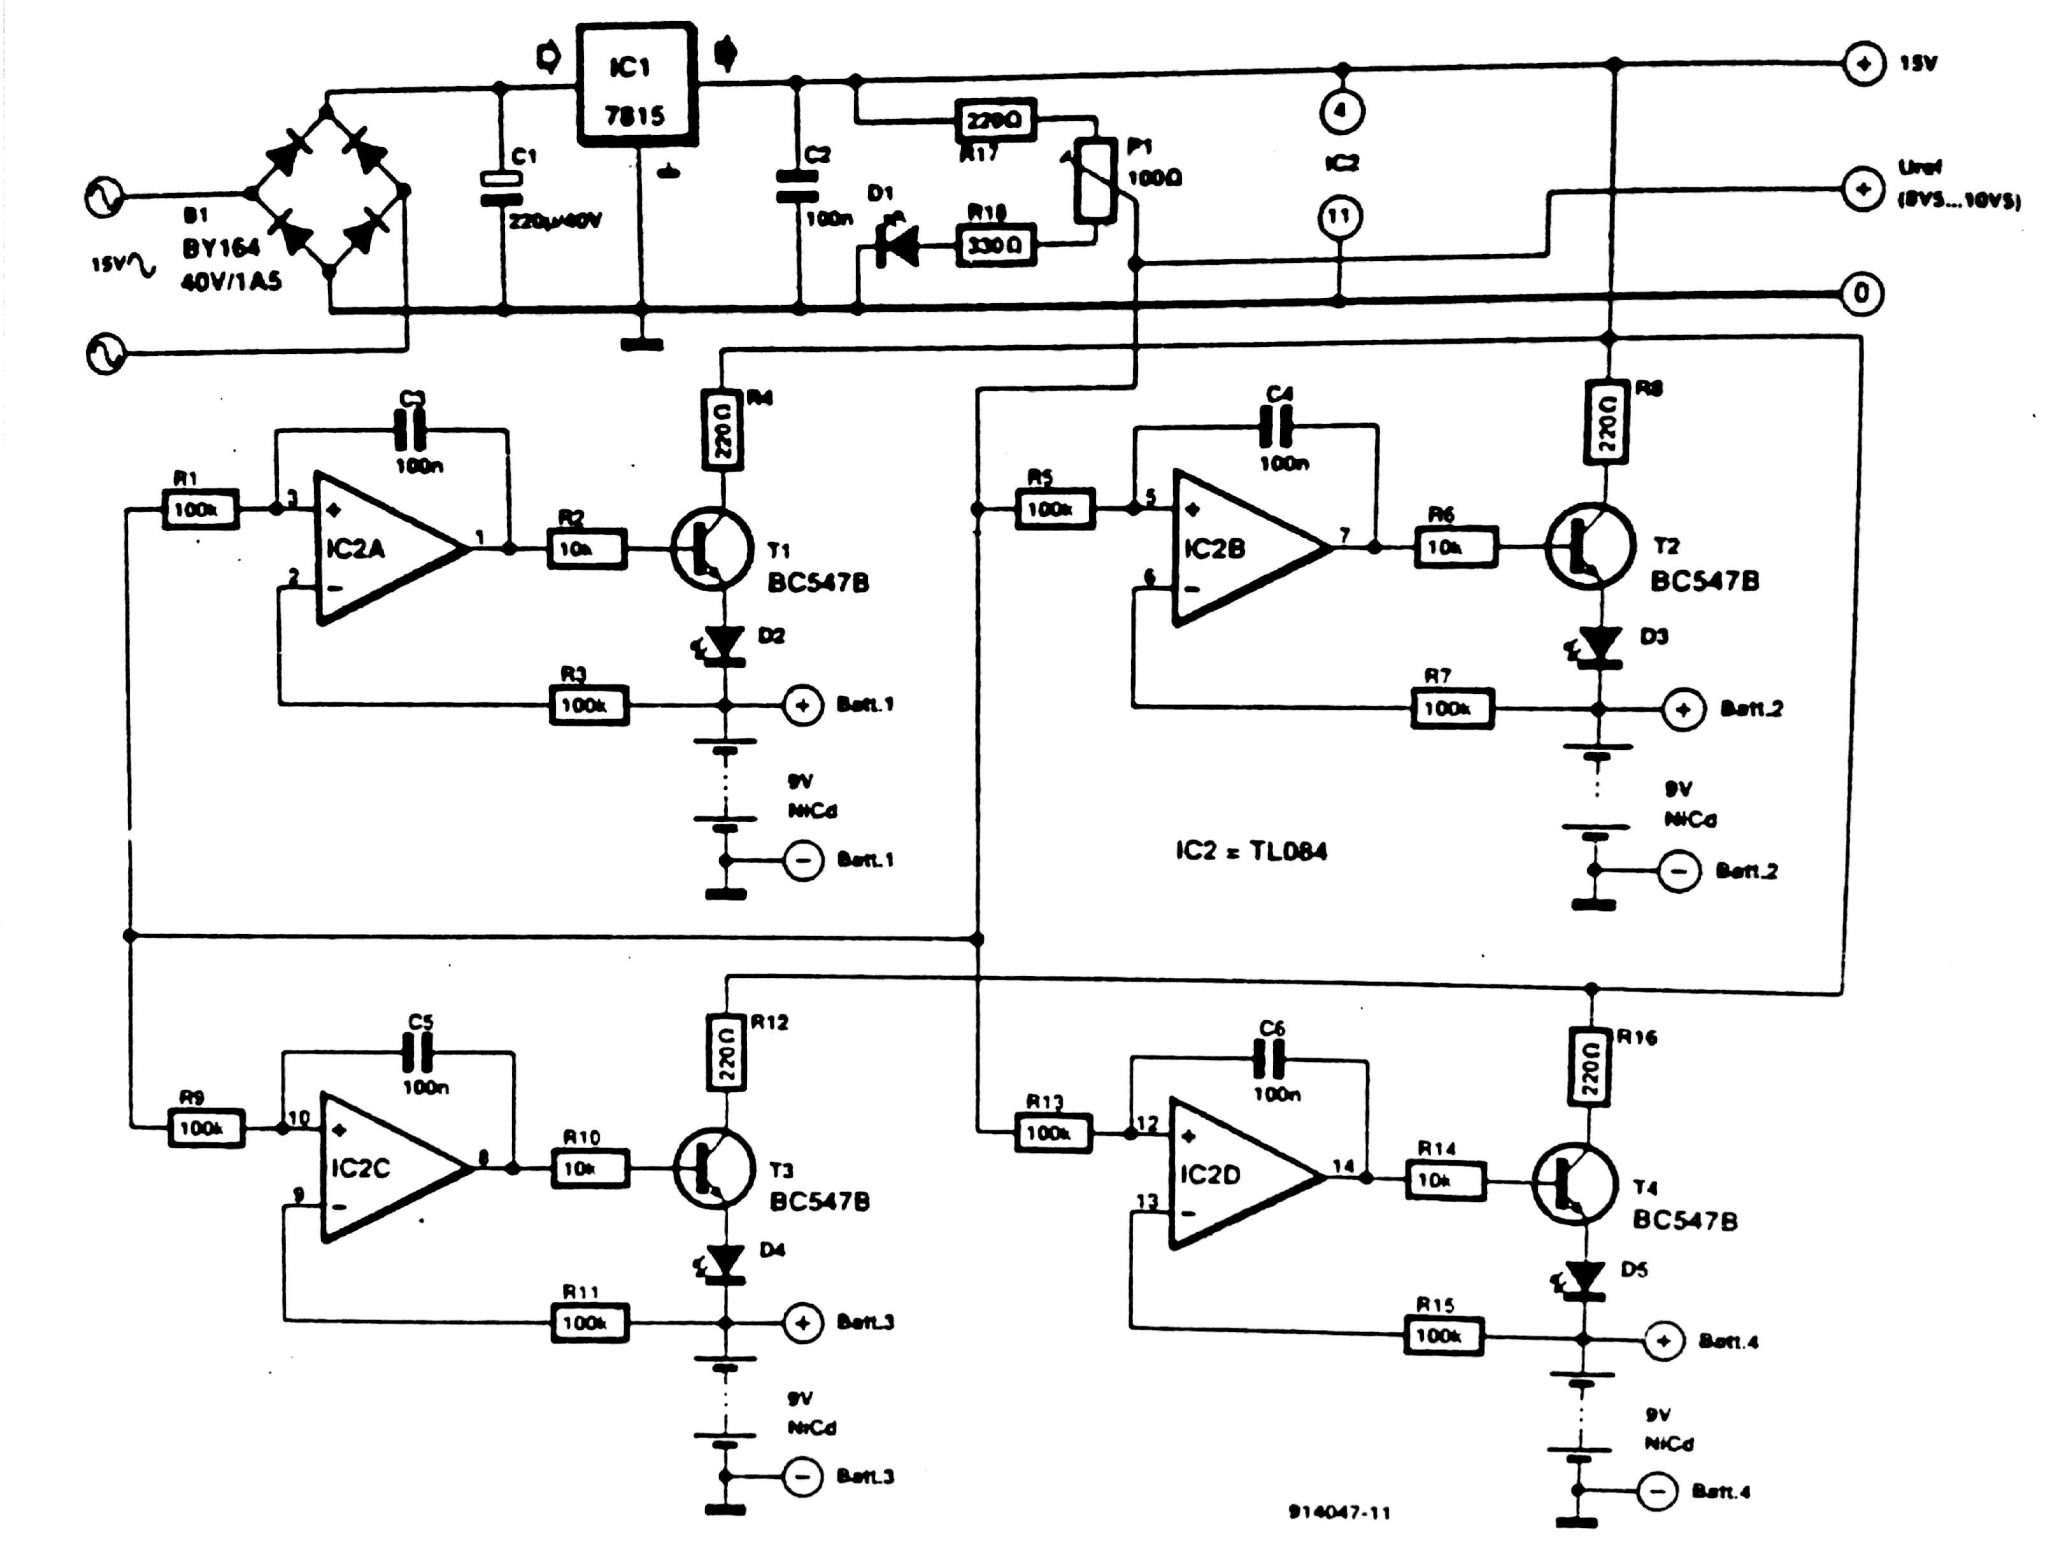 9v battery diagram ford transit wiring 2006 nicd charger circuit diagramz